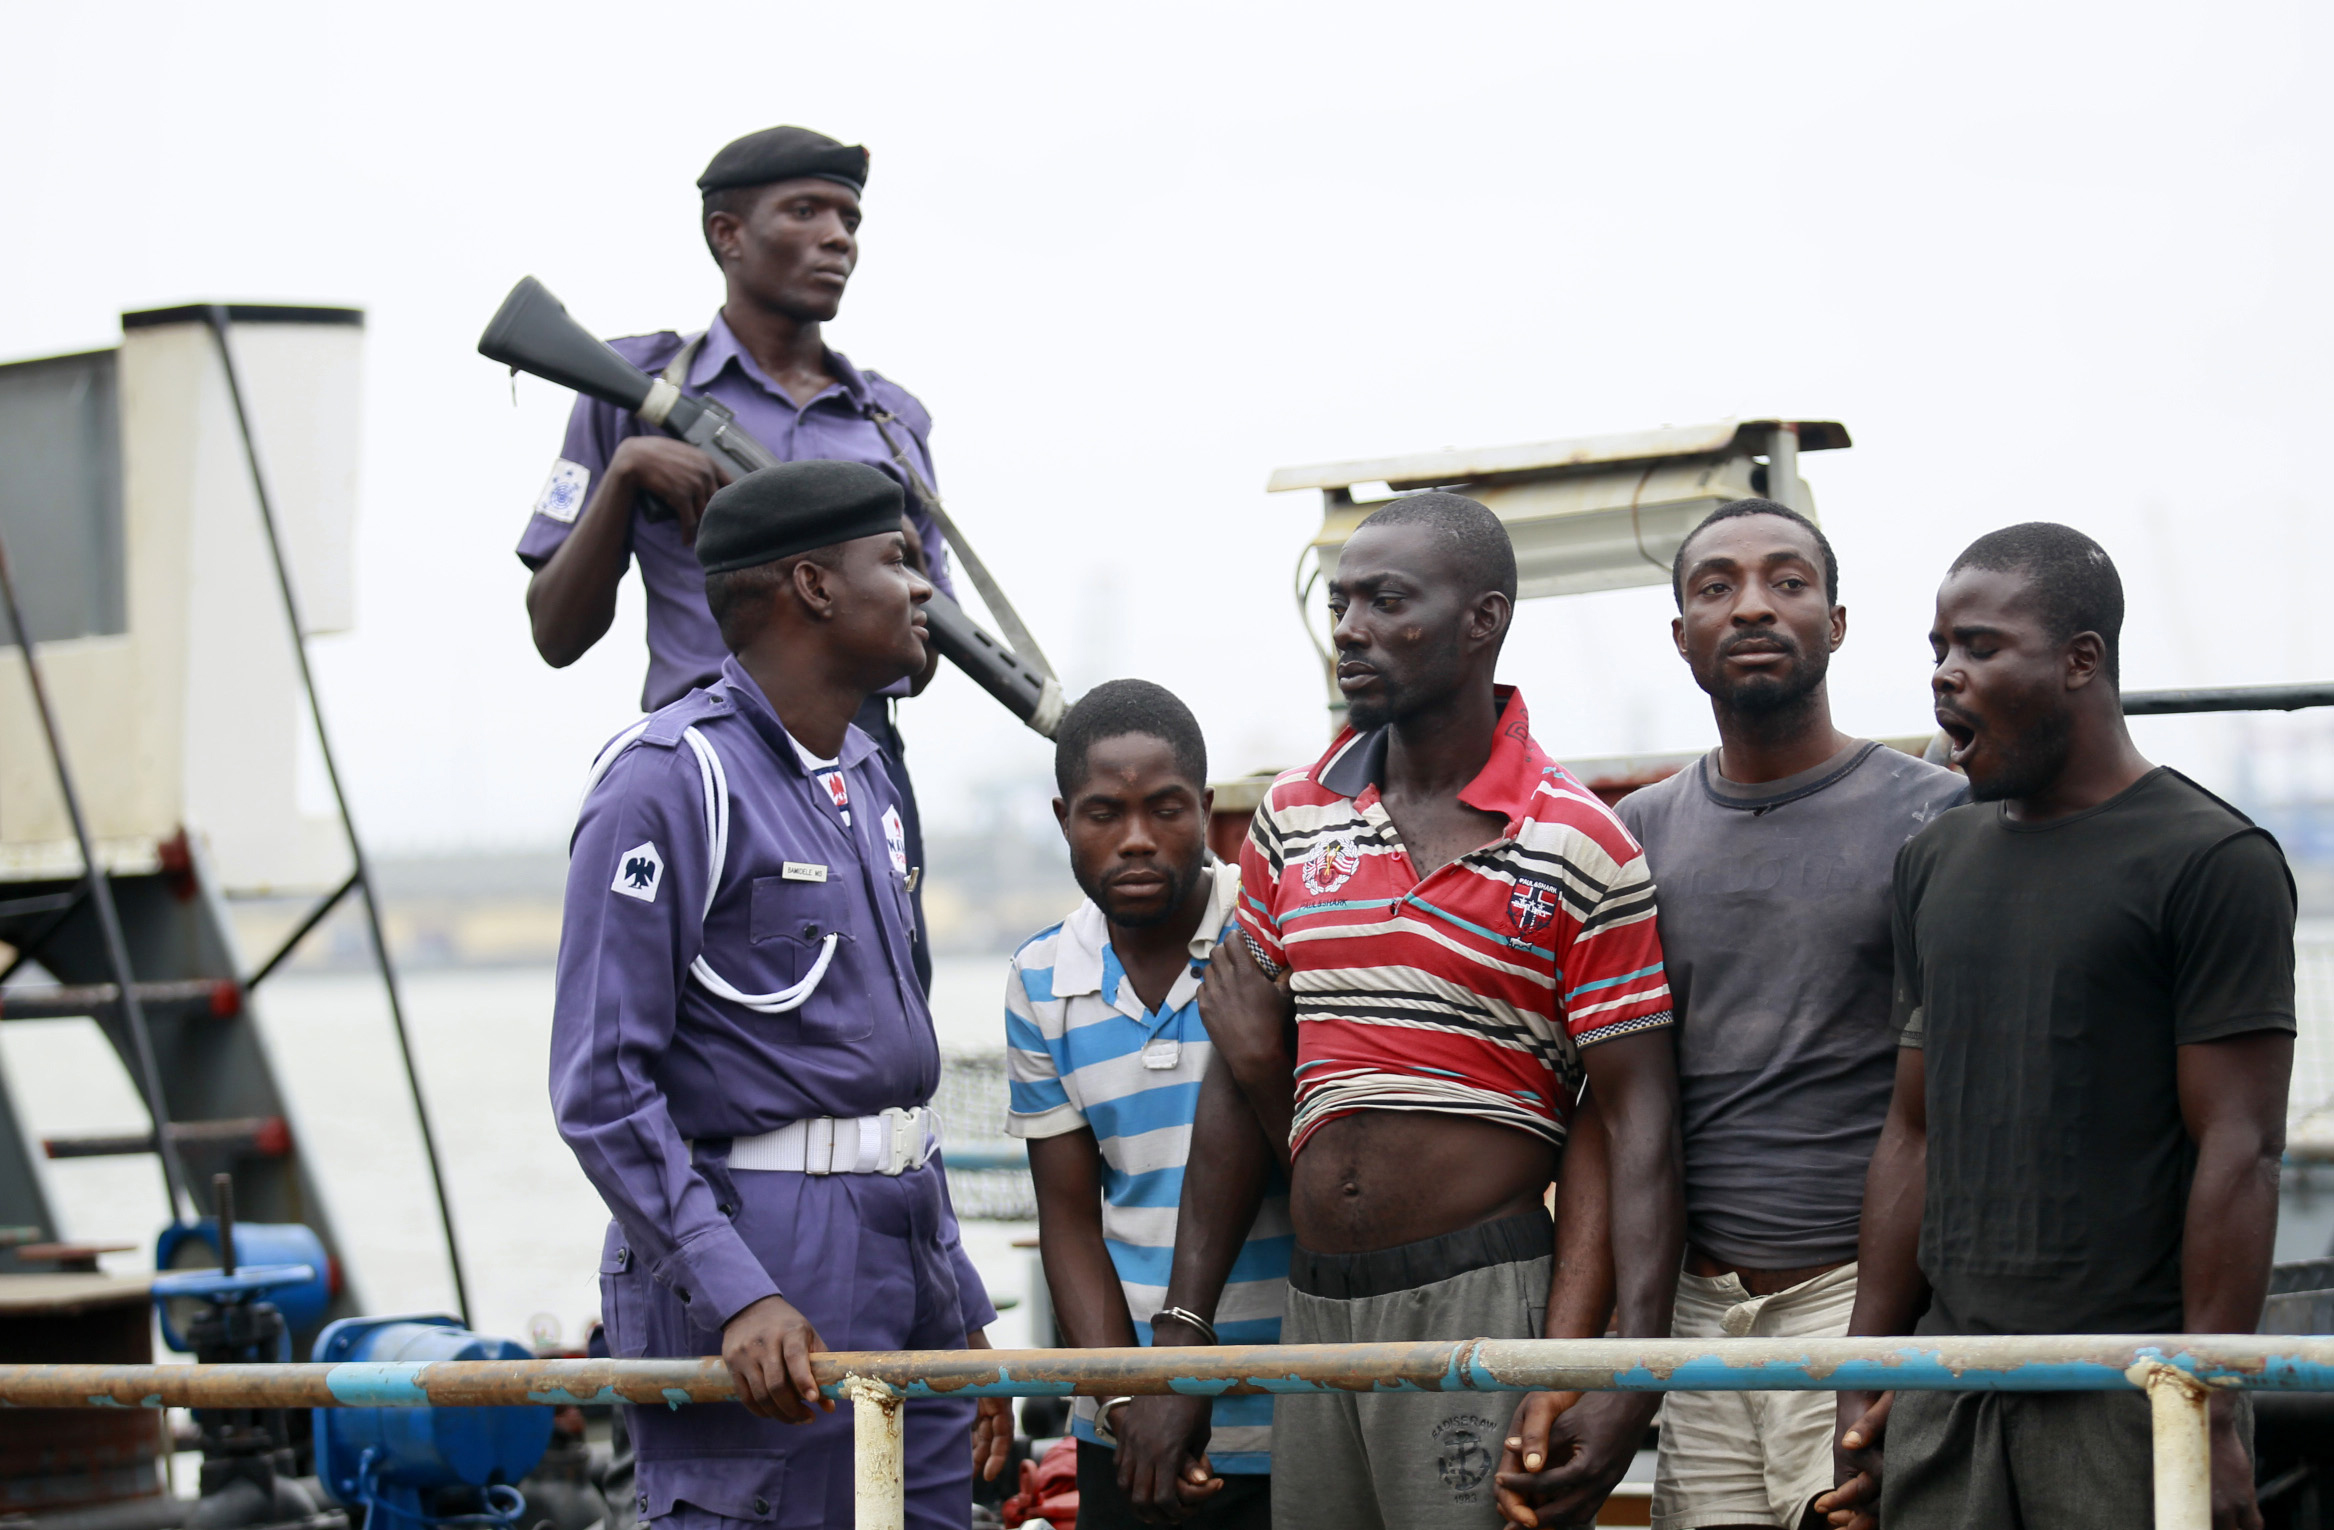 Suspected pirates are paraded aboard a ship at a Lagos naval base after their arrest by Nigerian authorities.